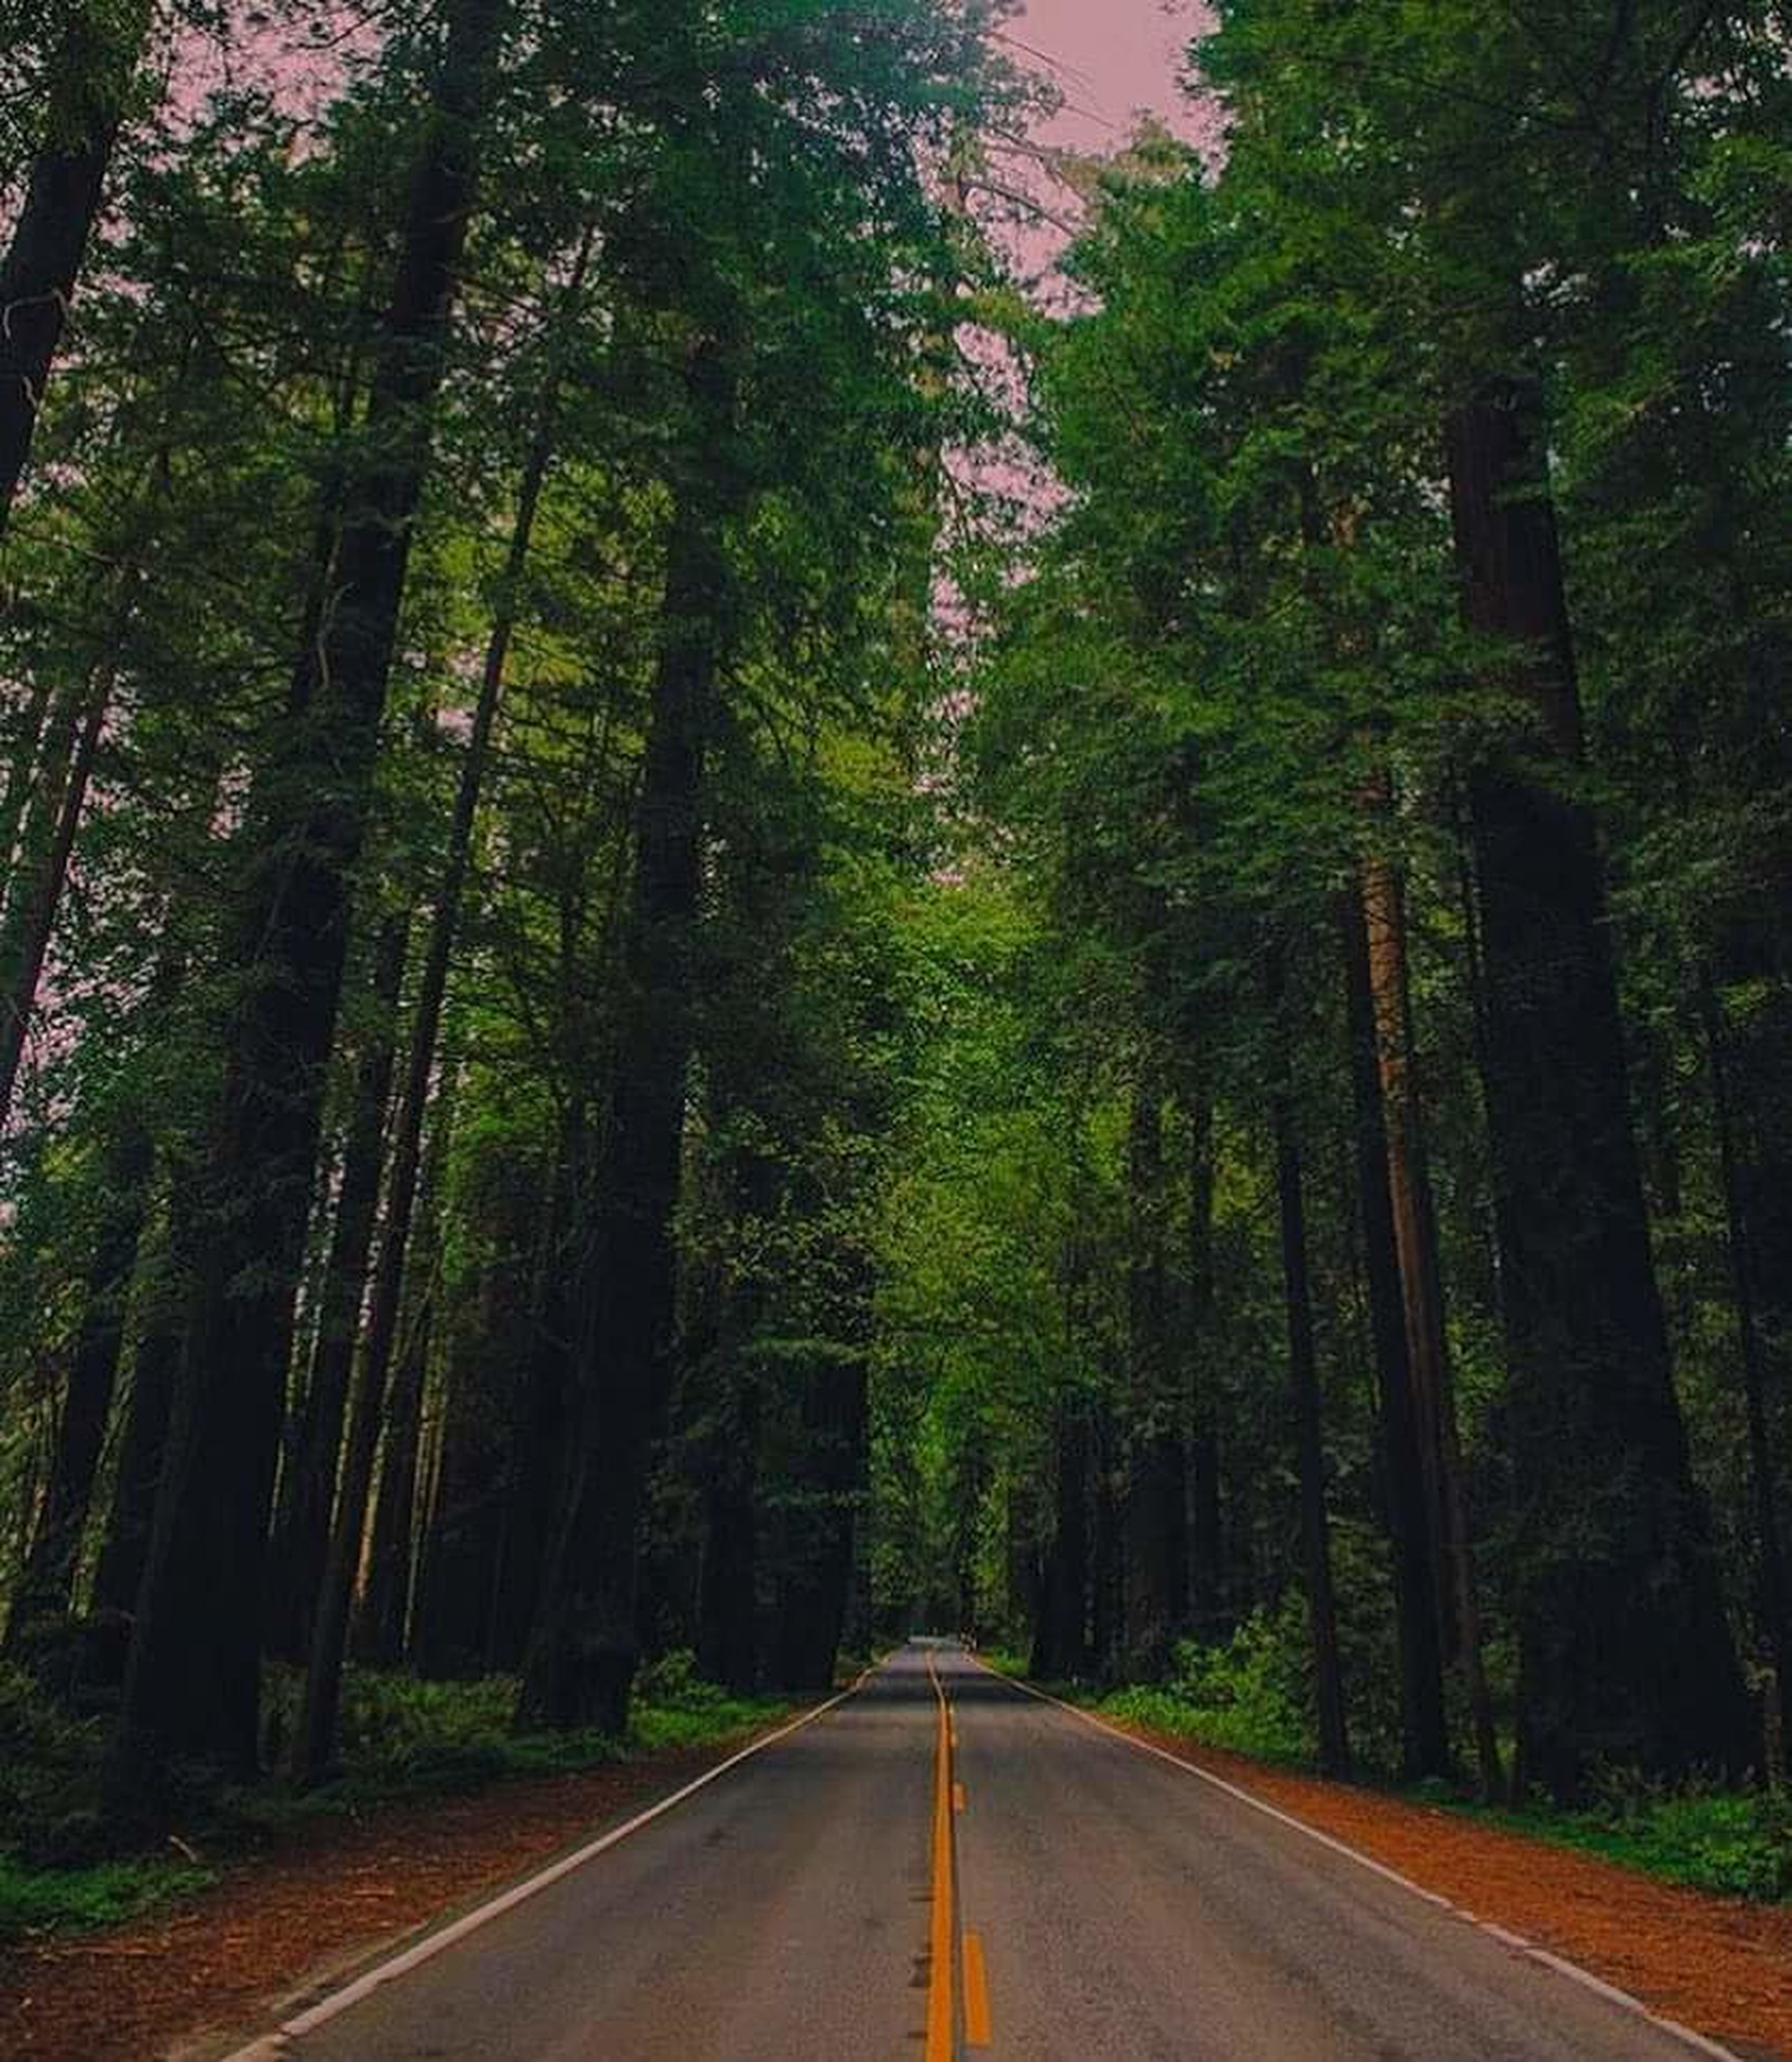 tree, the way forward, diminishing perspective, forest, transportation, road, vanishing point, tranquility, growth, nature, tranquil scene, empty road, green color, beauty in nature, scenics, lush foliage, no people, day, country road, woodland